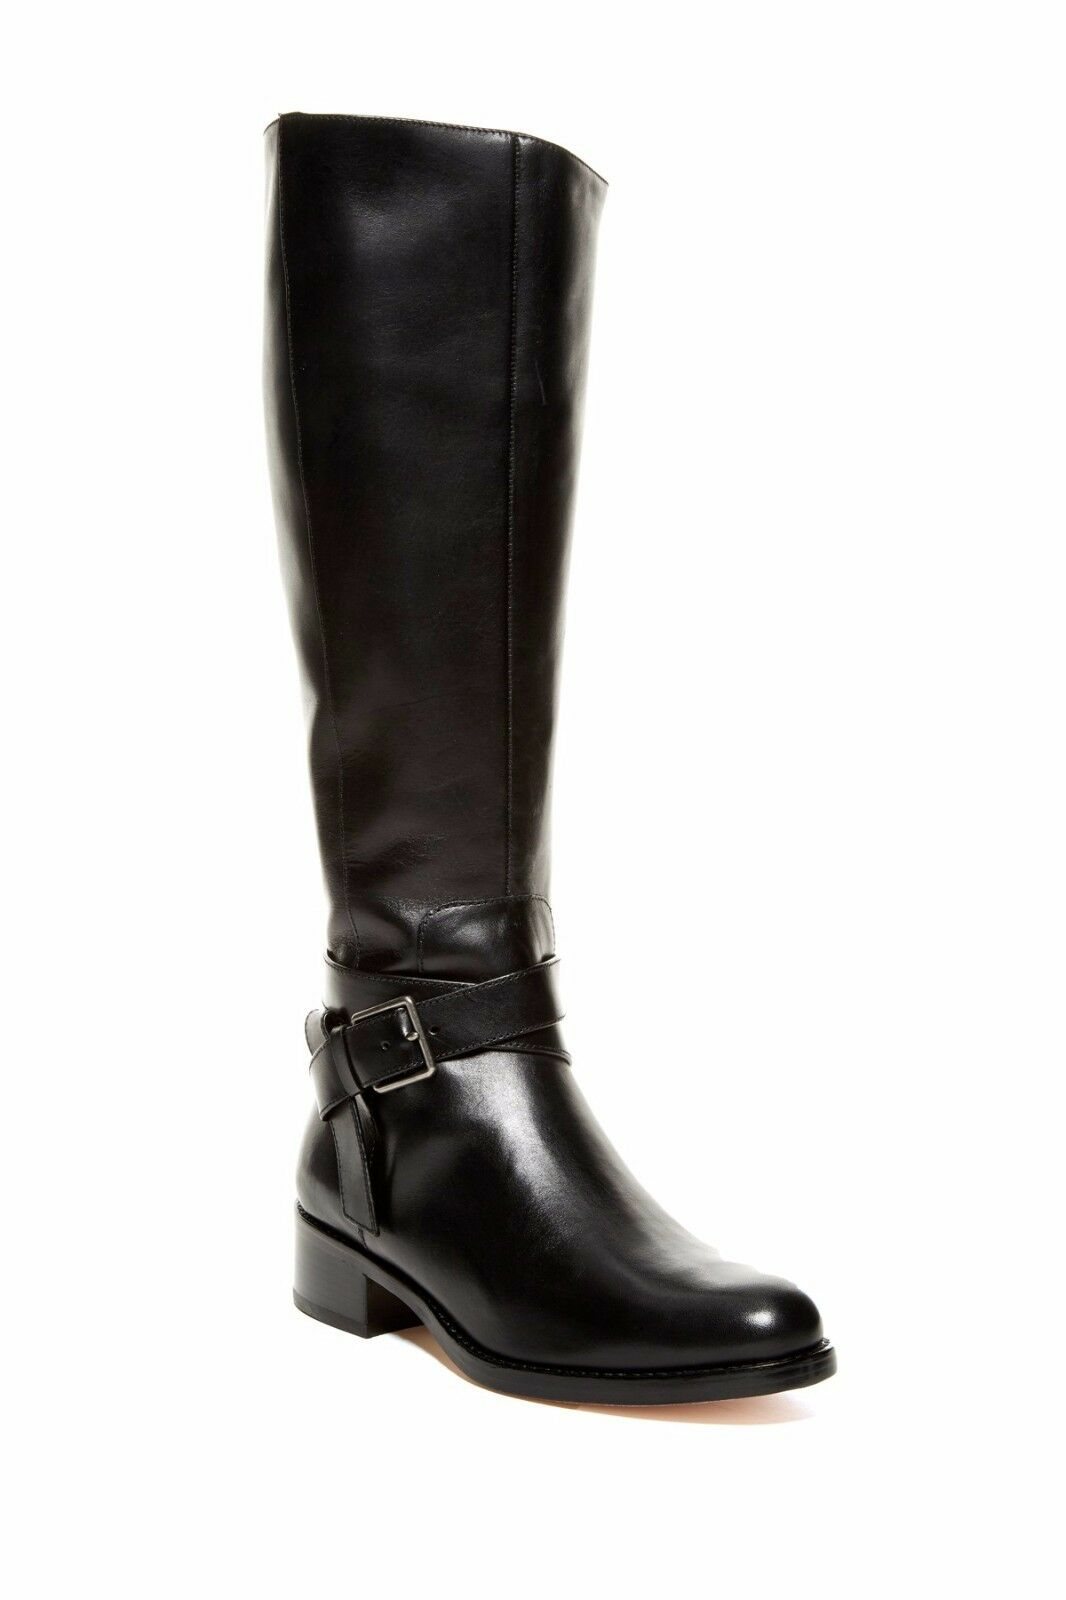 $400 NIB Cole Haan Briarcliff Boot, Black Leather, Extended Cuff, Size 6